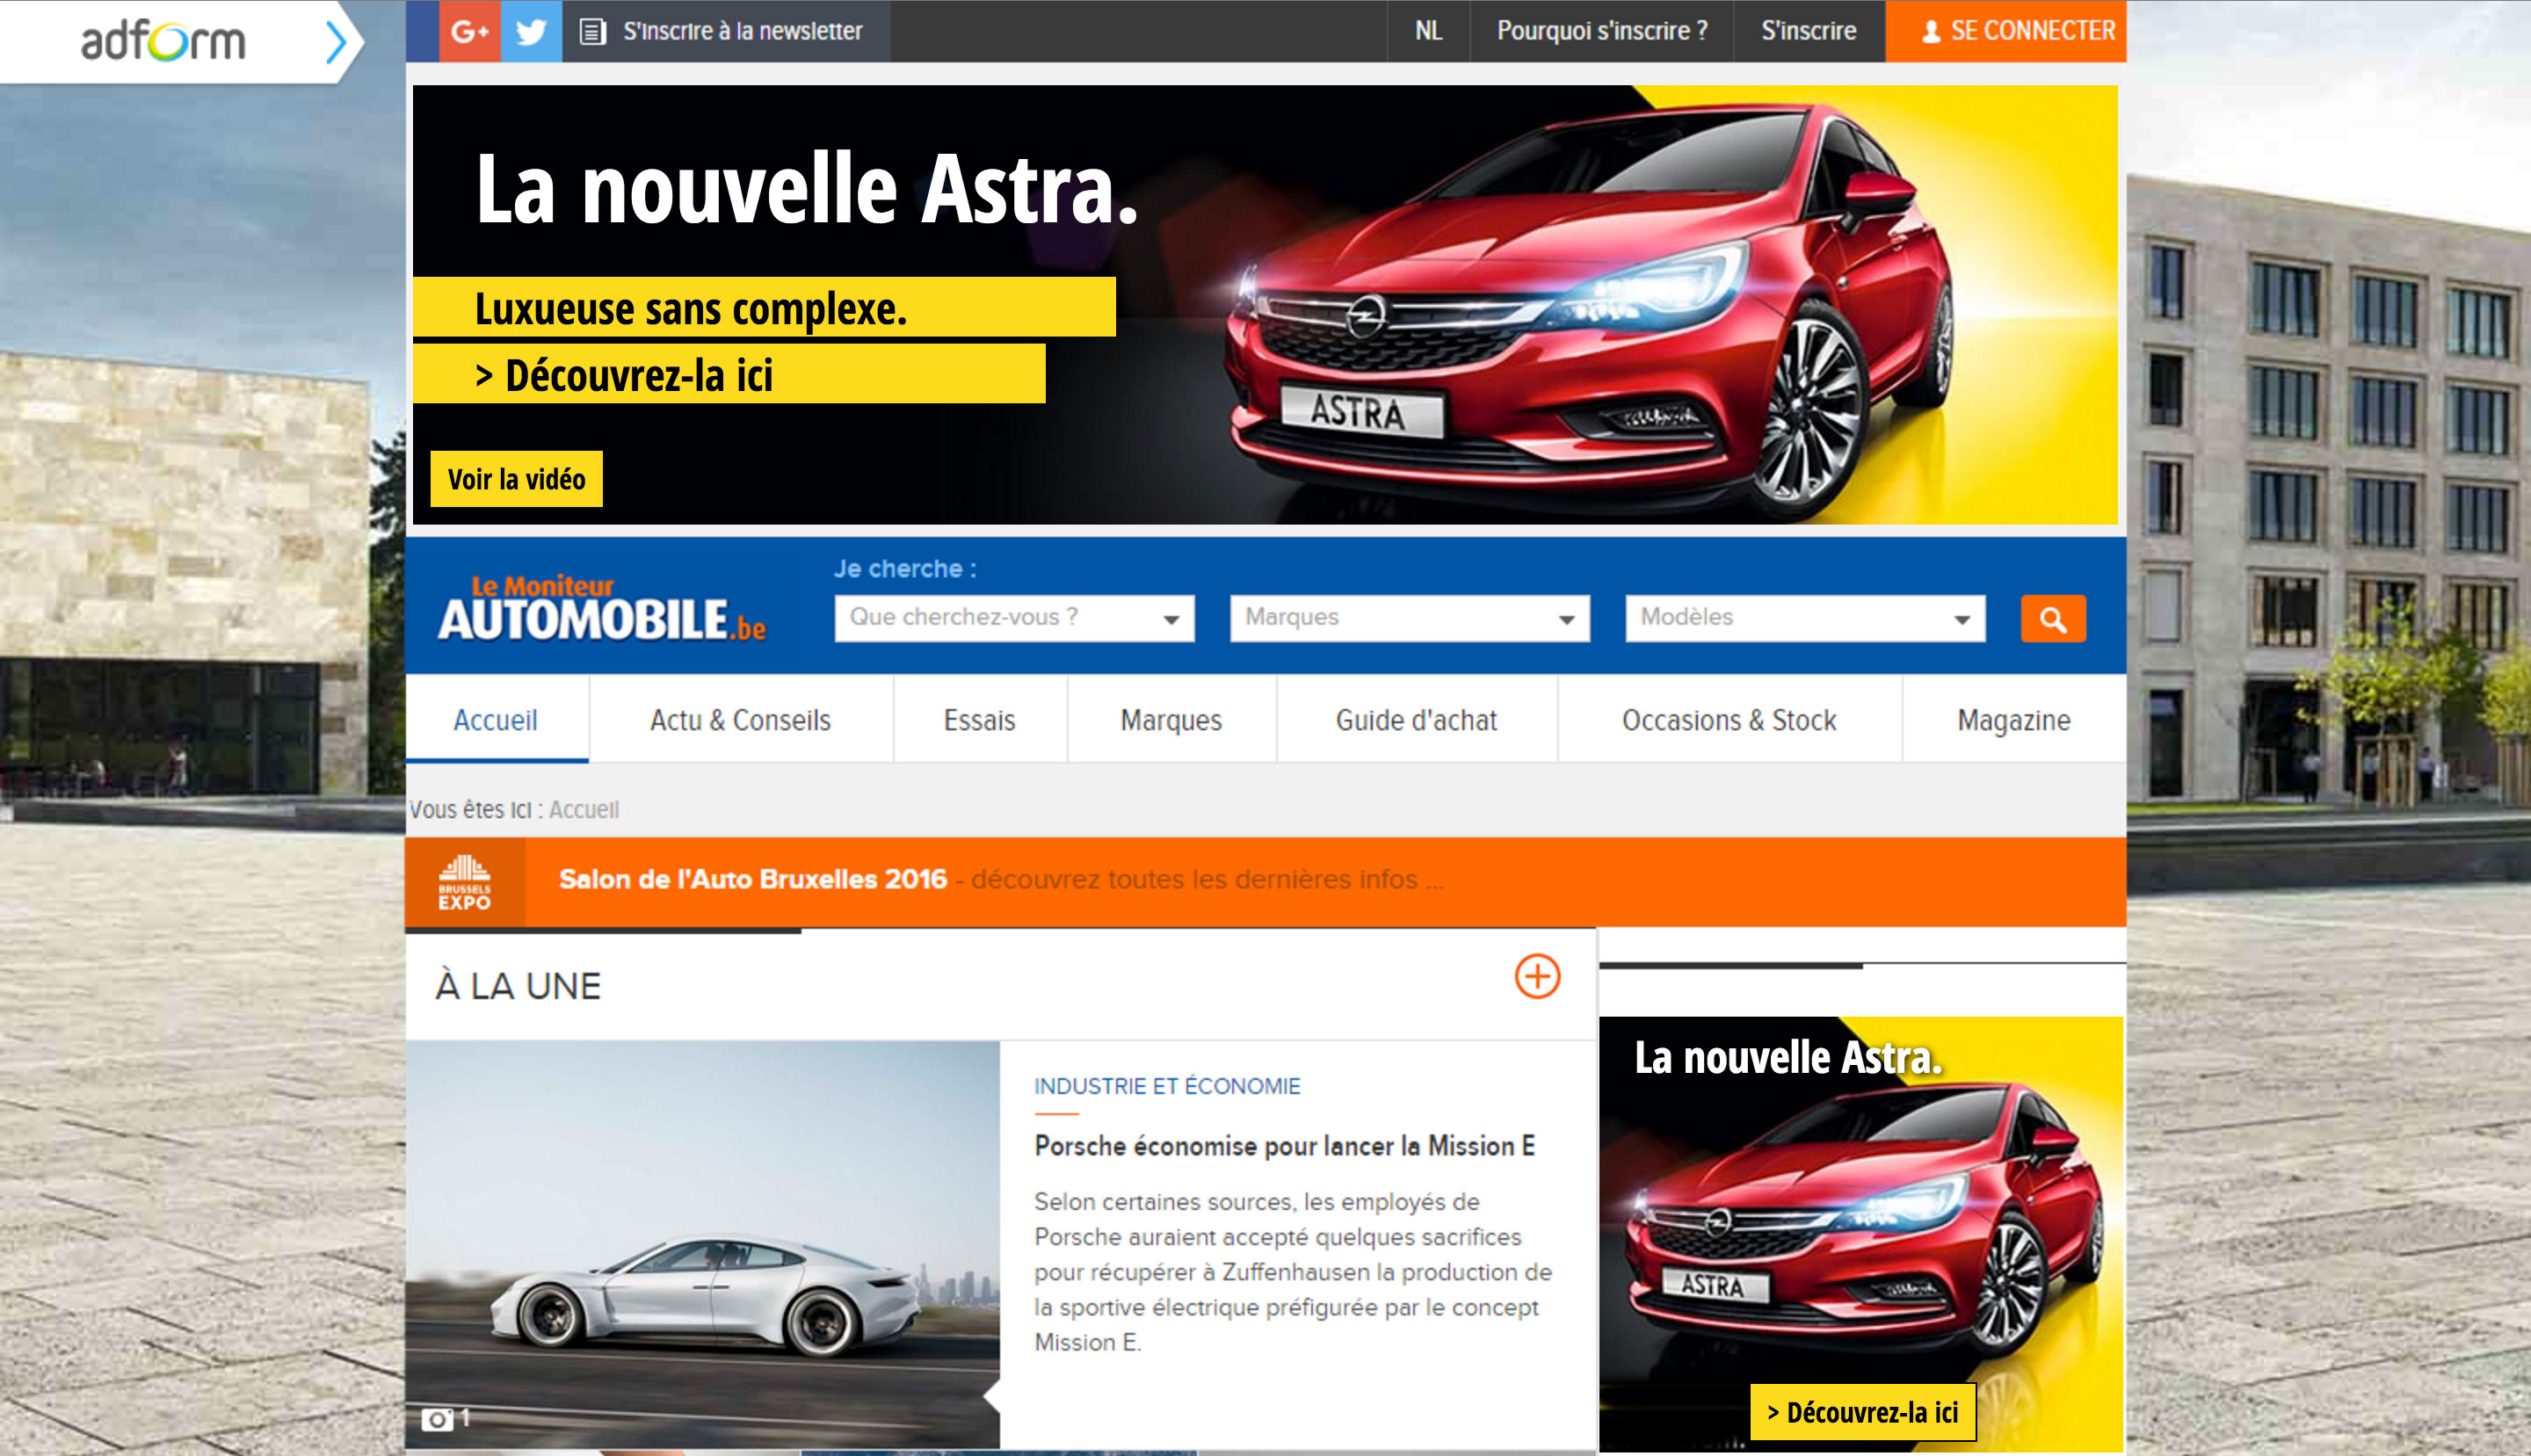 Opel Astra advertising - Le Moniteur Automobile